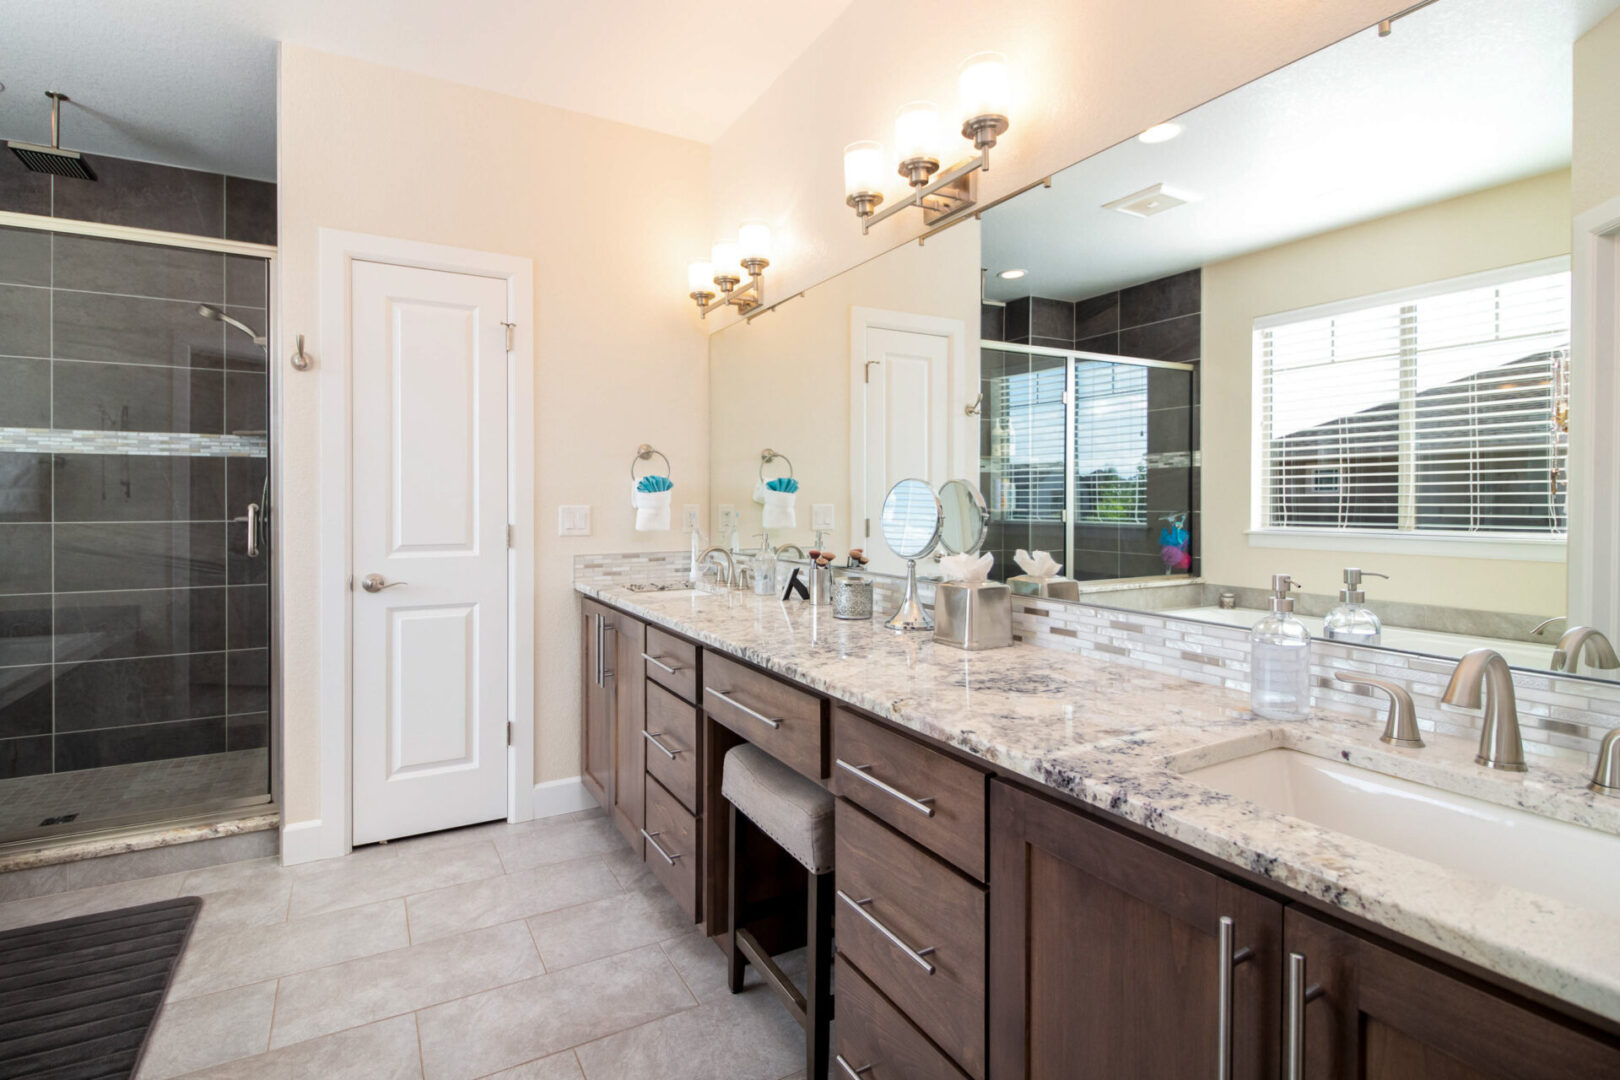 bathroom sink with granite countertop and warm lights